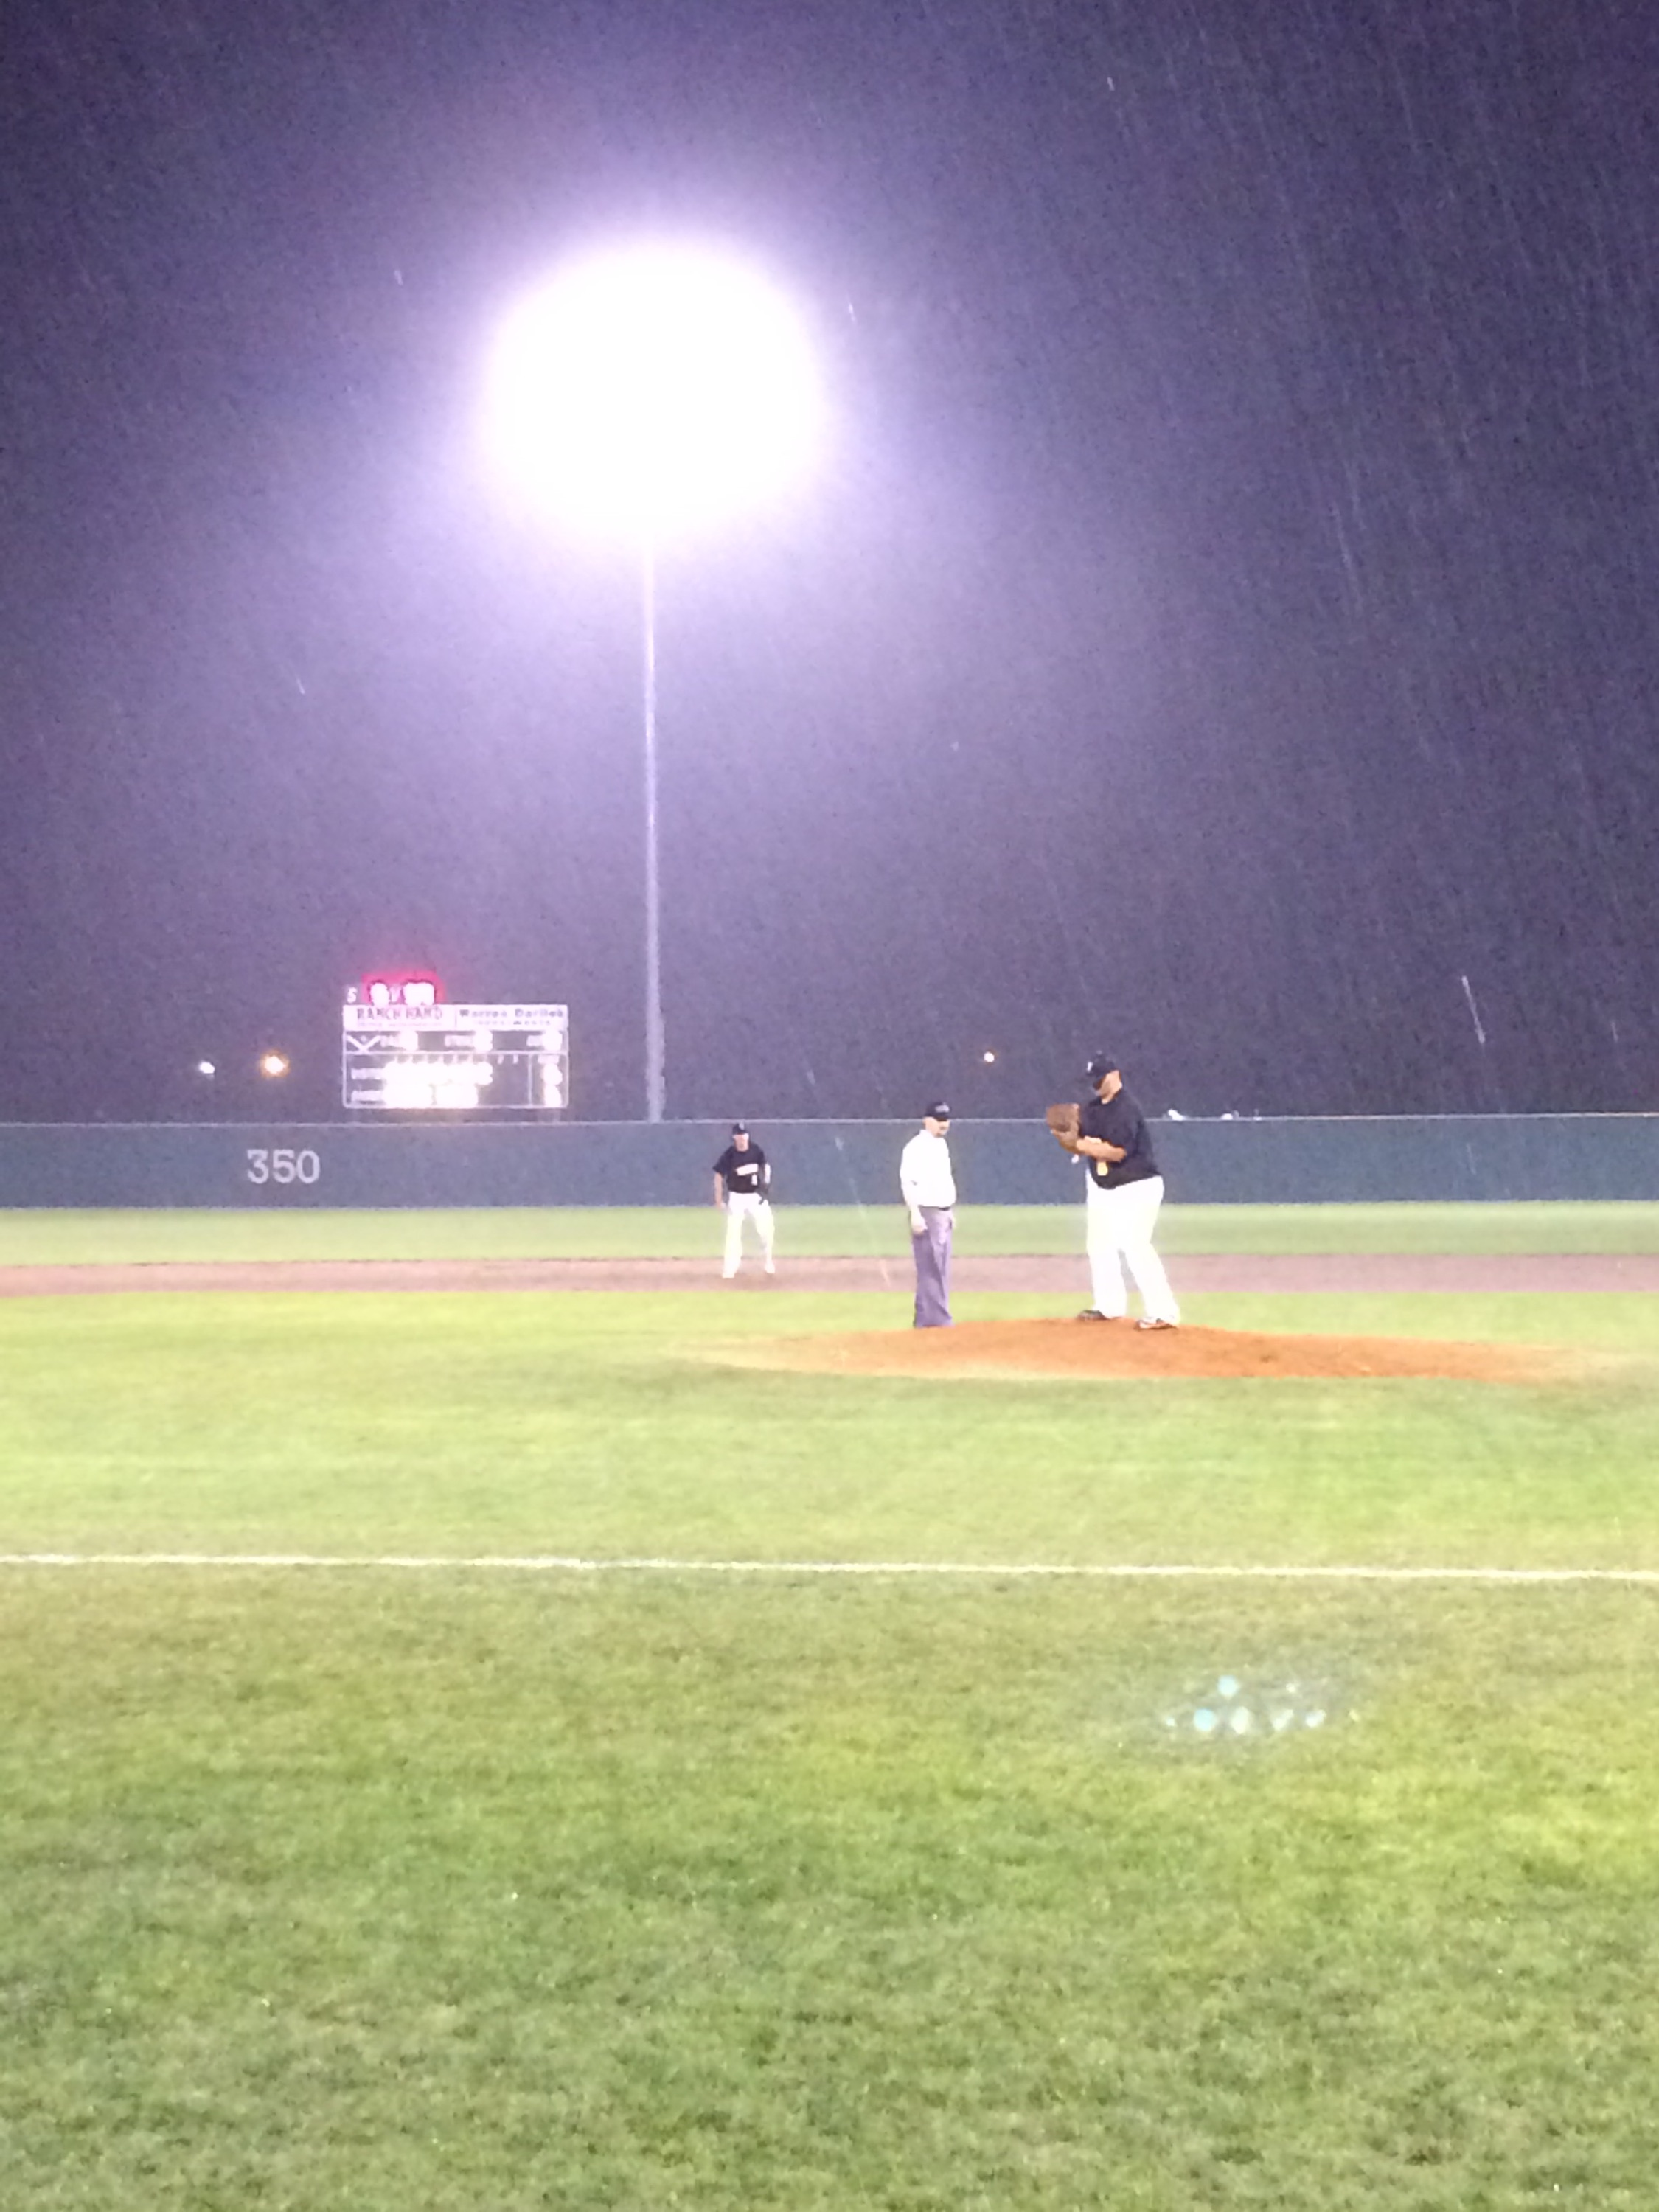 Baseball in the rain